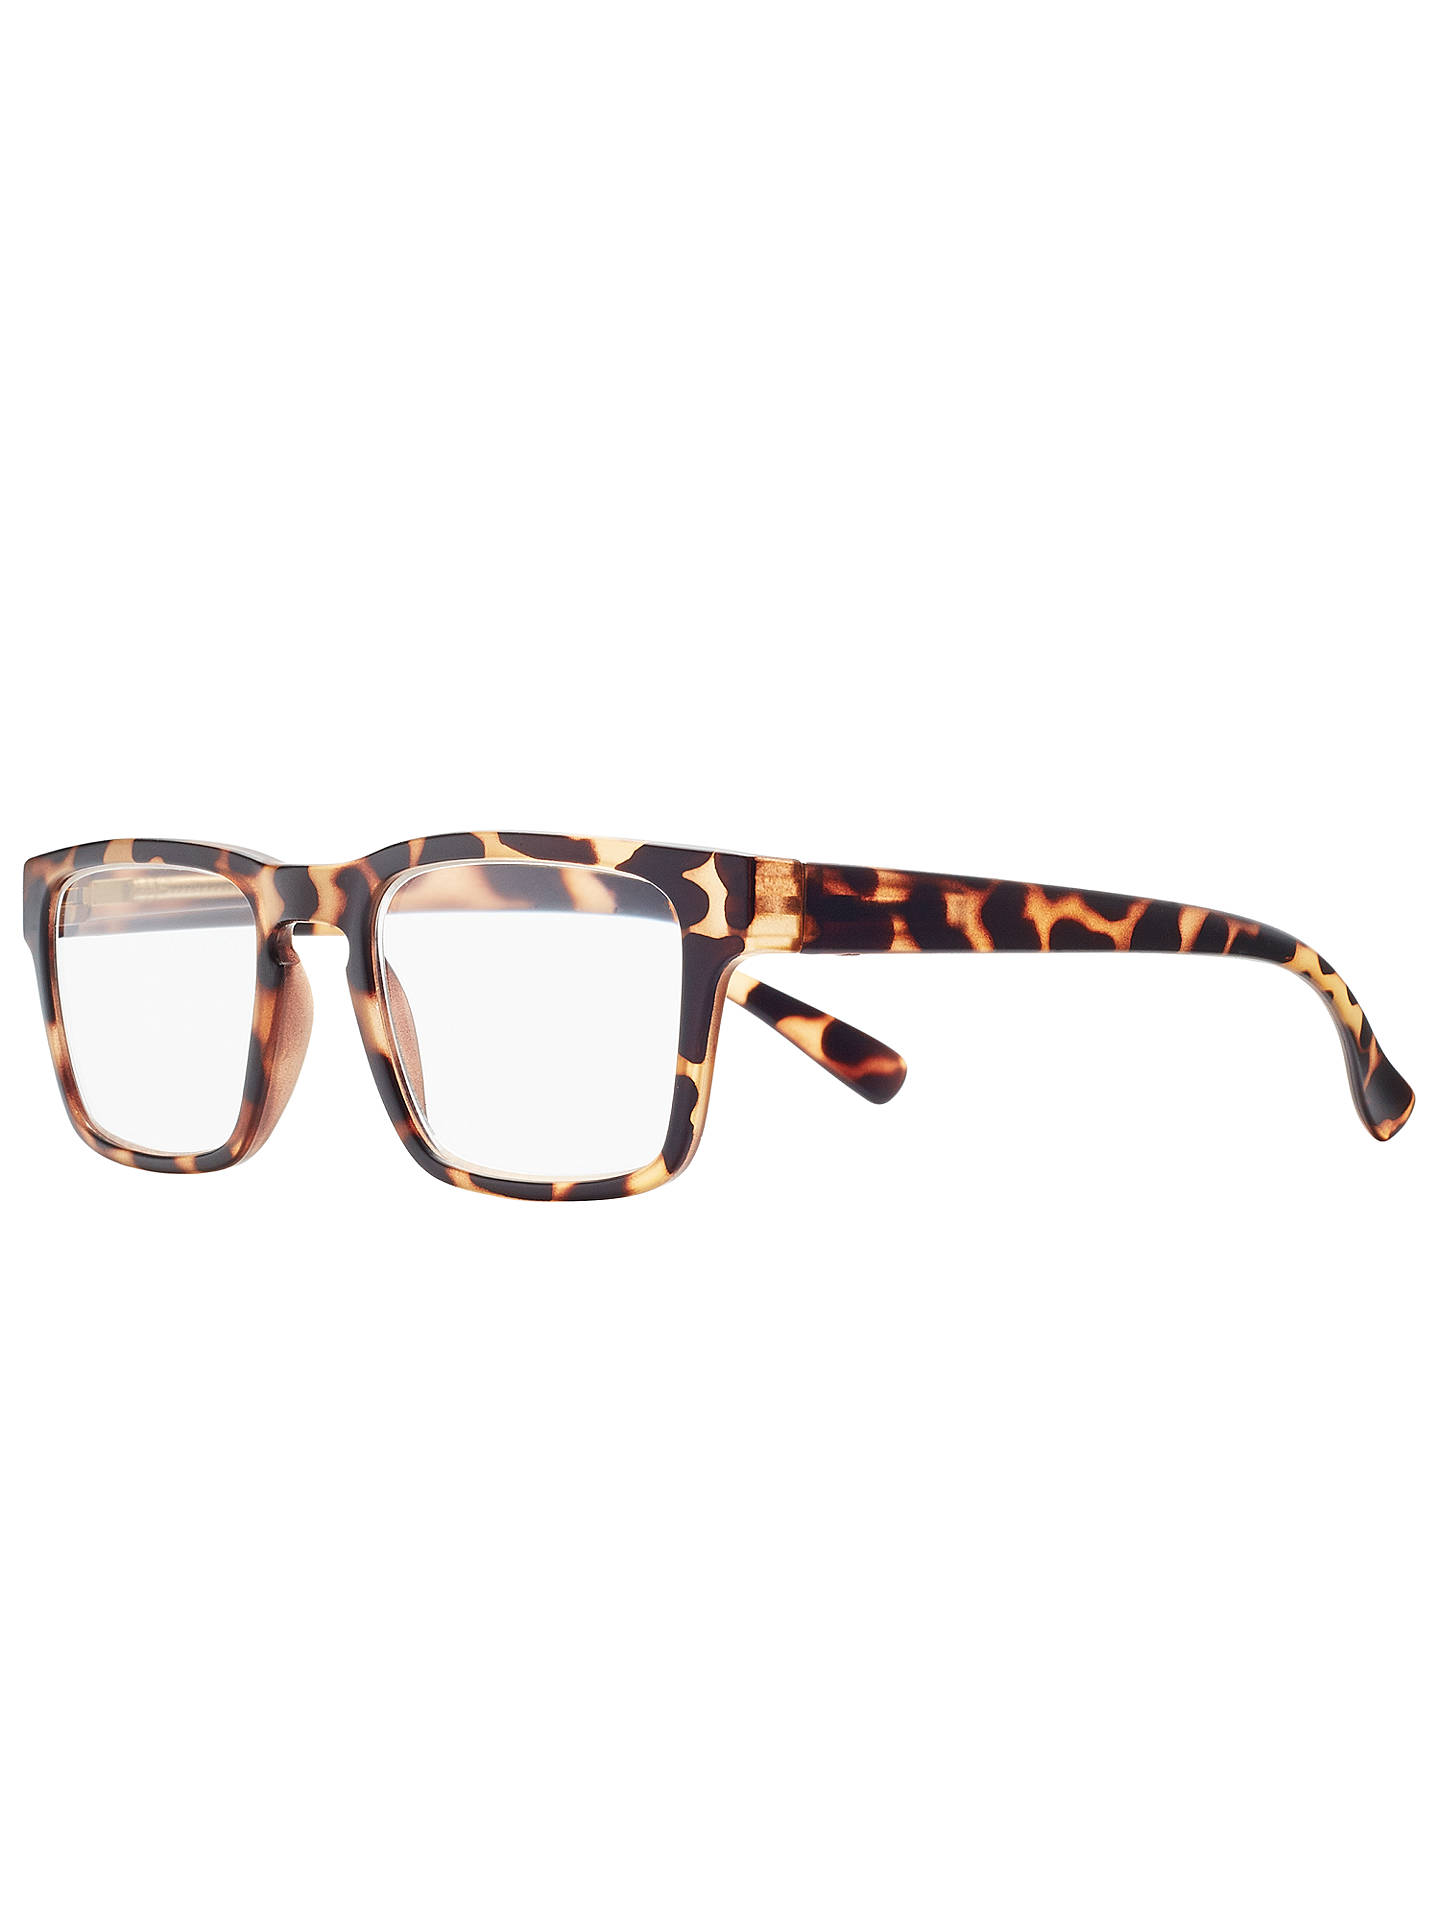 BuyMagnif Eyes Ready Readers Laramie Glasses, Tortoise, 1.5 Online at johnlewis.com